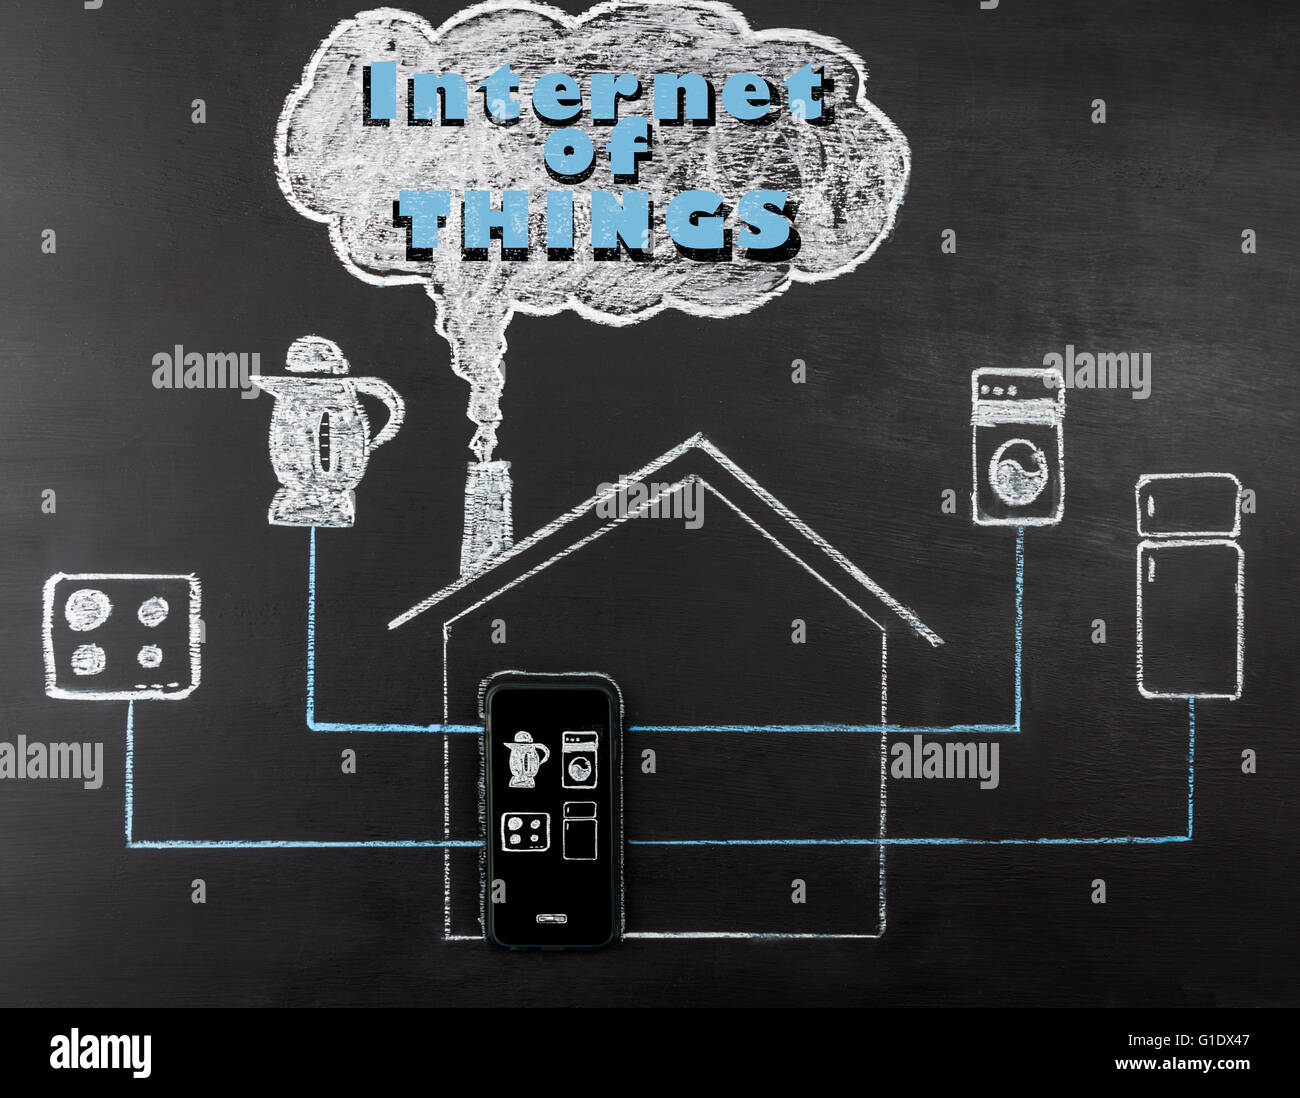 Internet of things concept hand drawn with chalk on blackboard. Mobile phone controlling kettle, stove, fridge, - Stock Image